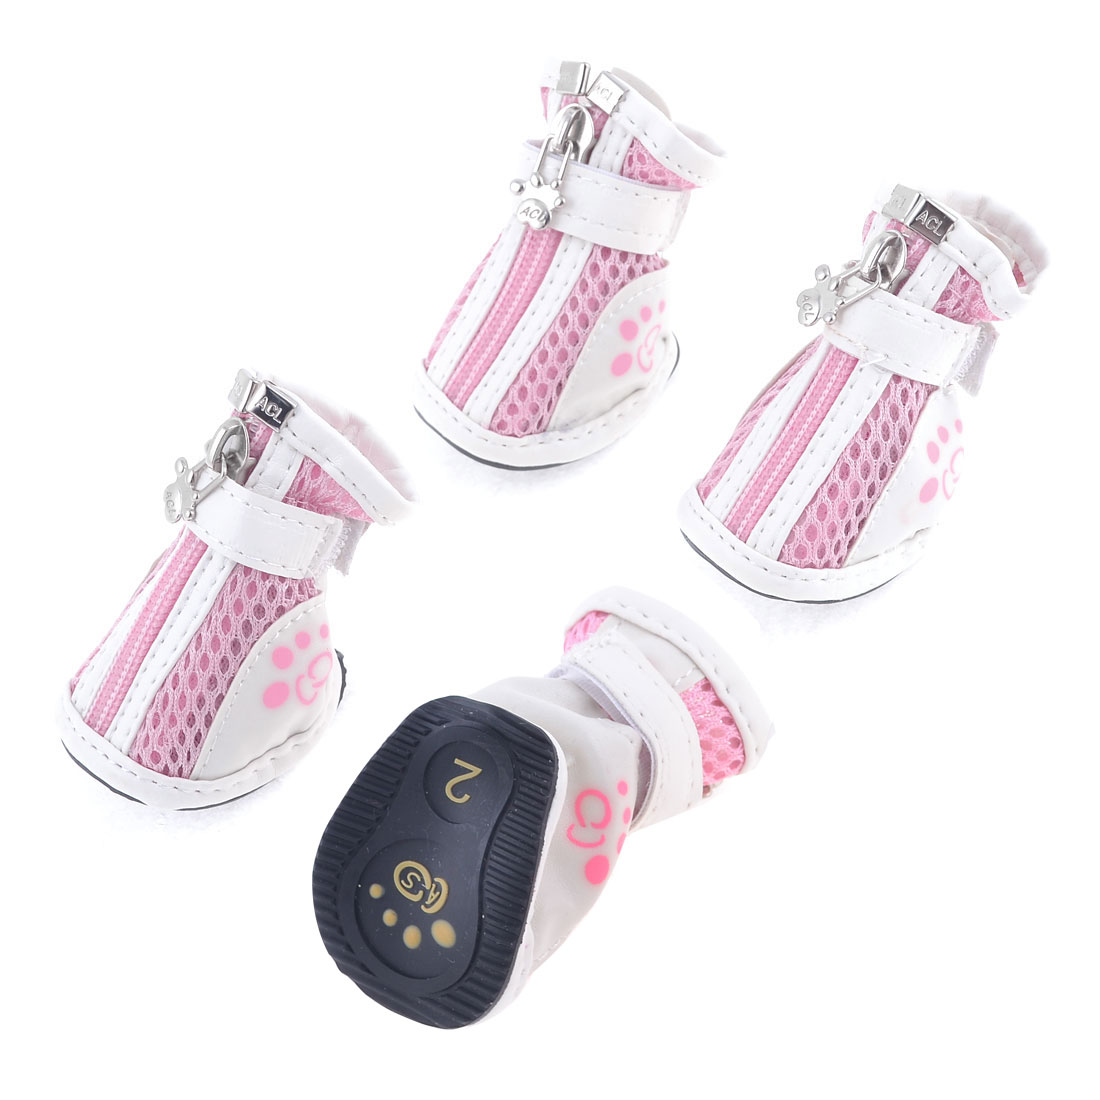 Dog Chihuaha Nonslip Rubber Sole Hook Loop Fastener Shoes White Pink 2 Pair Size 2